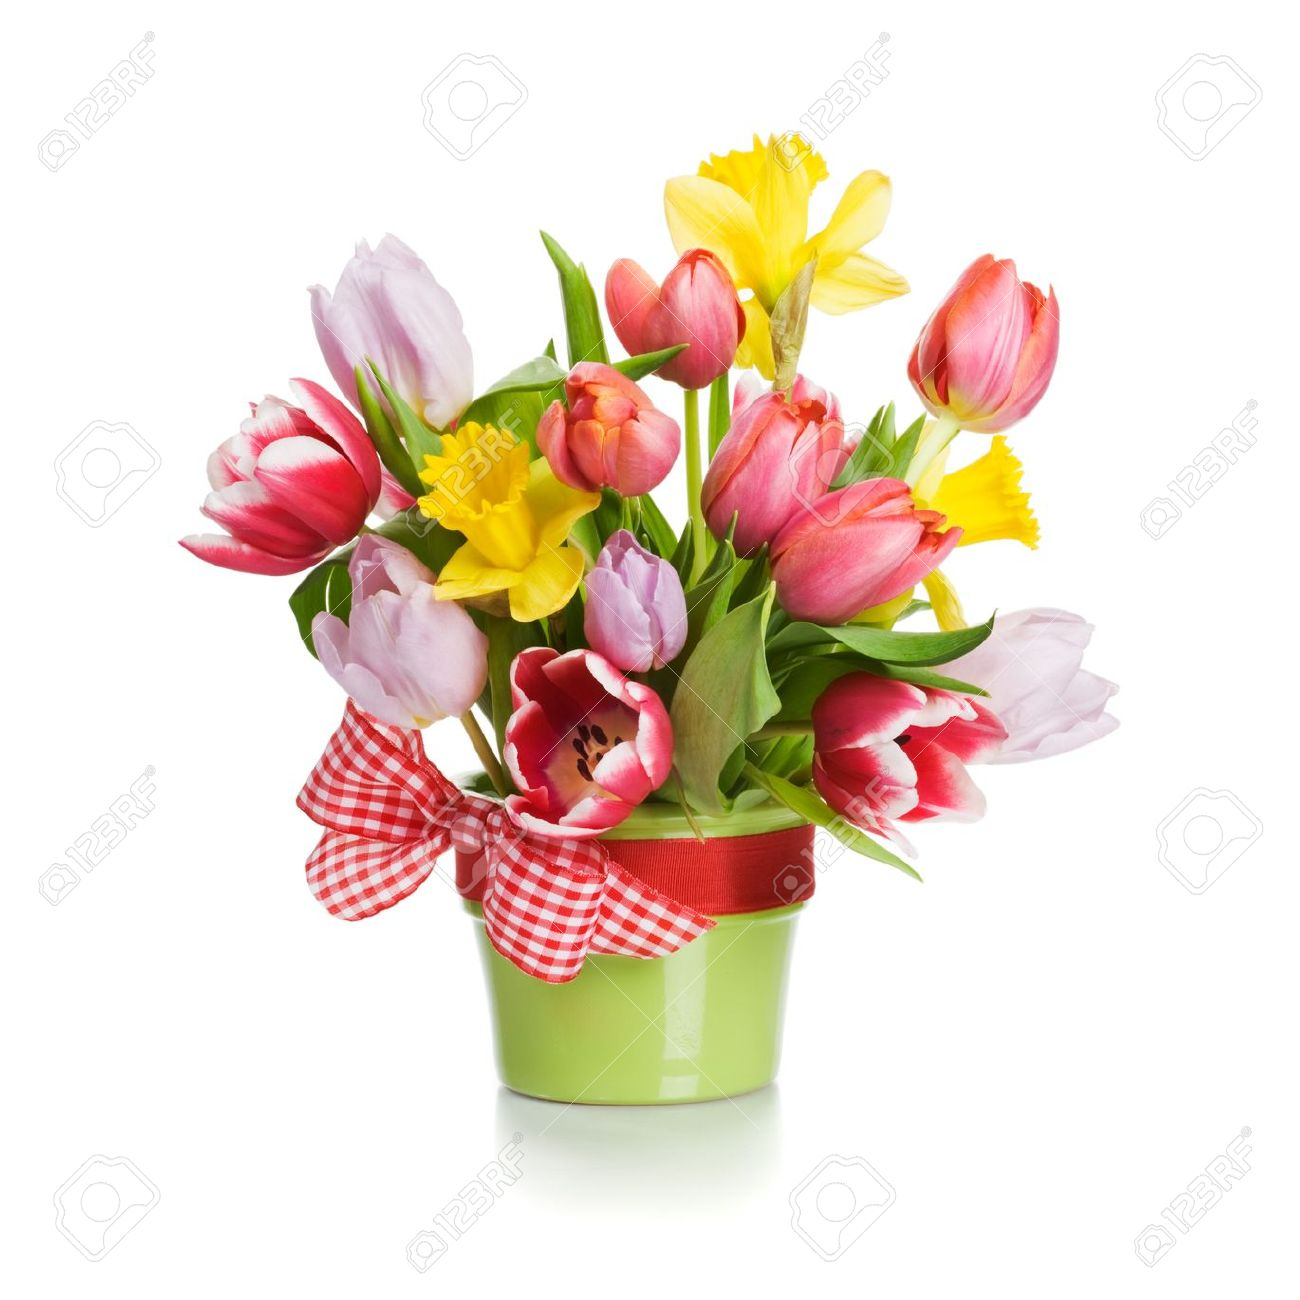 Green Flower Pot With Spring Flowers On White Background Stock Photo ...